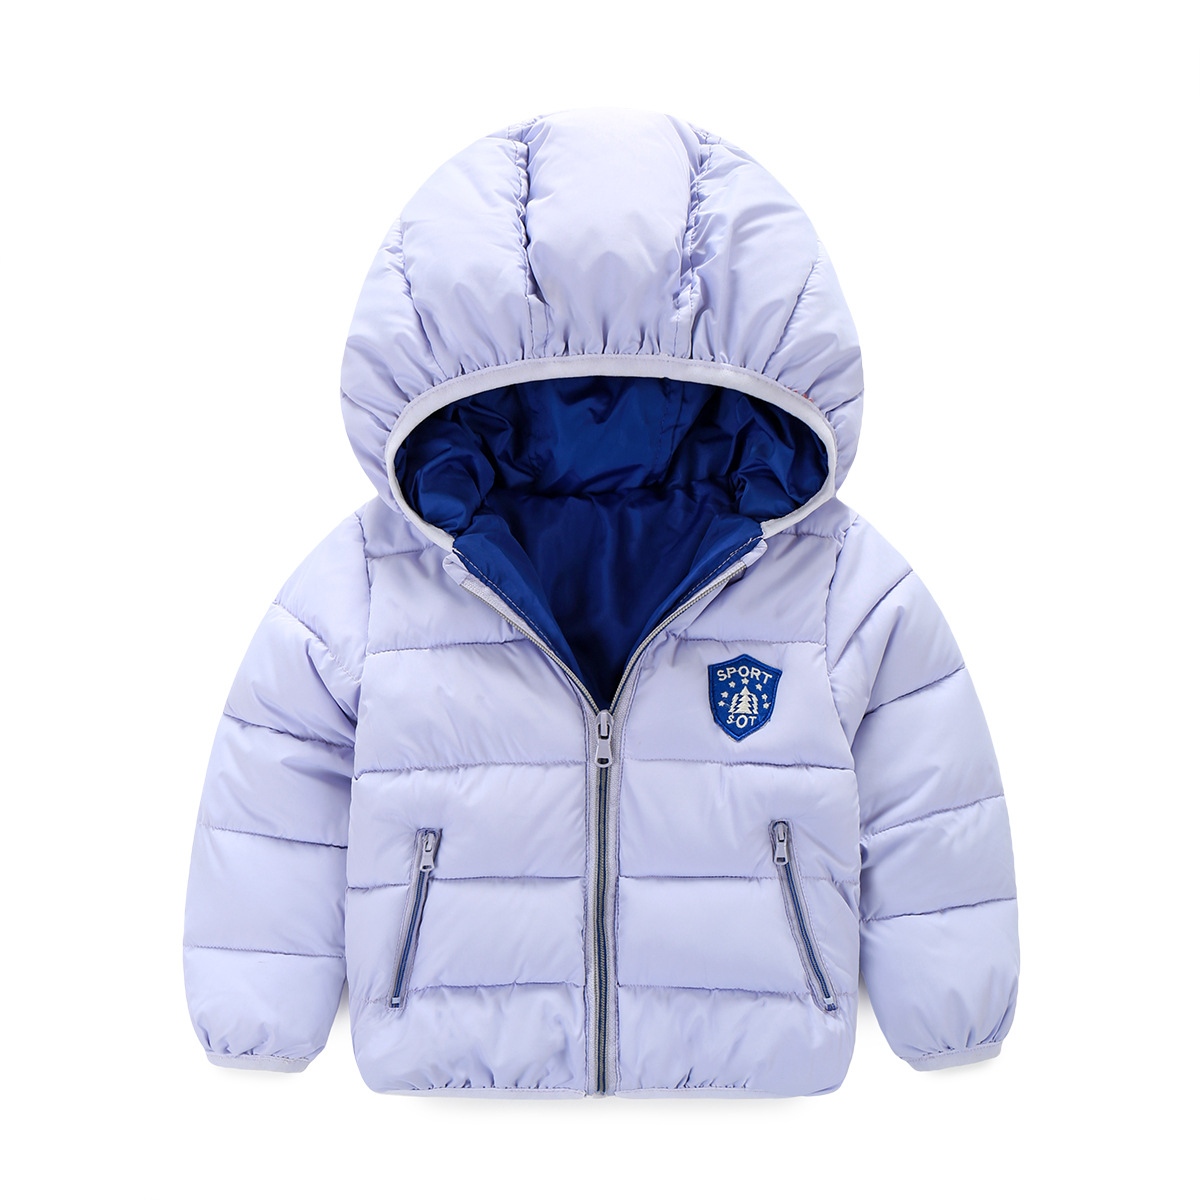 Buy Kids Coat Cotton Parkas Children Winter Clothes Jaket Parka Blazer Baby Canvas Boys Sport Style Outfits Down For Girls Warm Jacket Hooded From Reliable